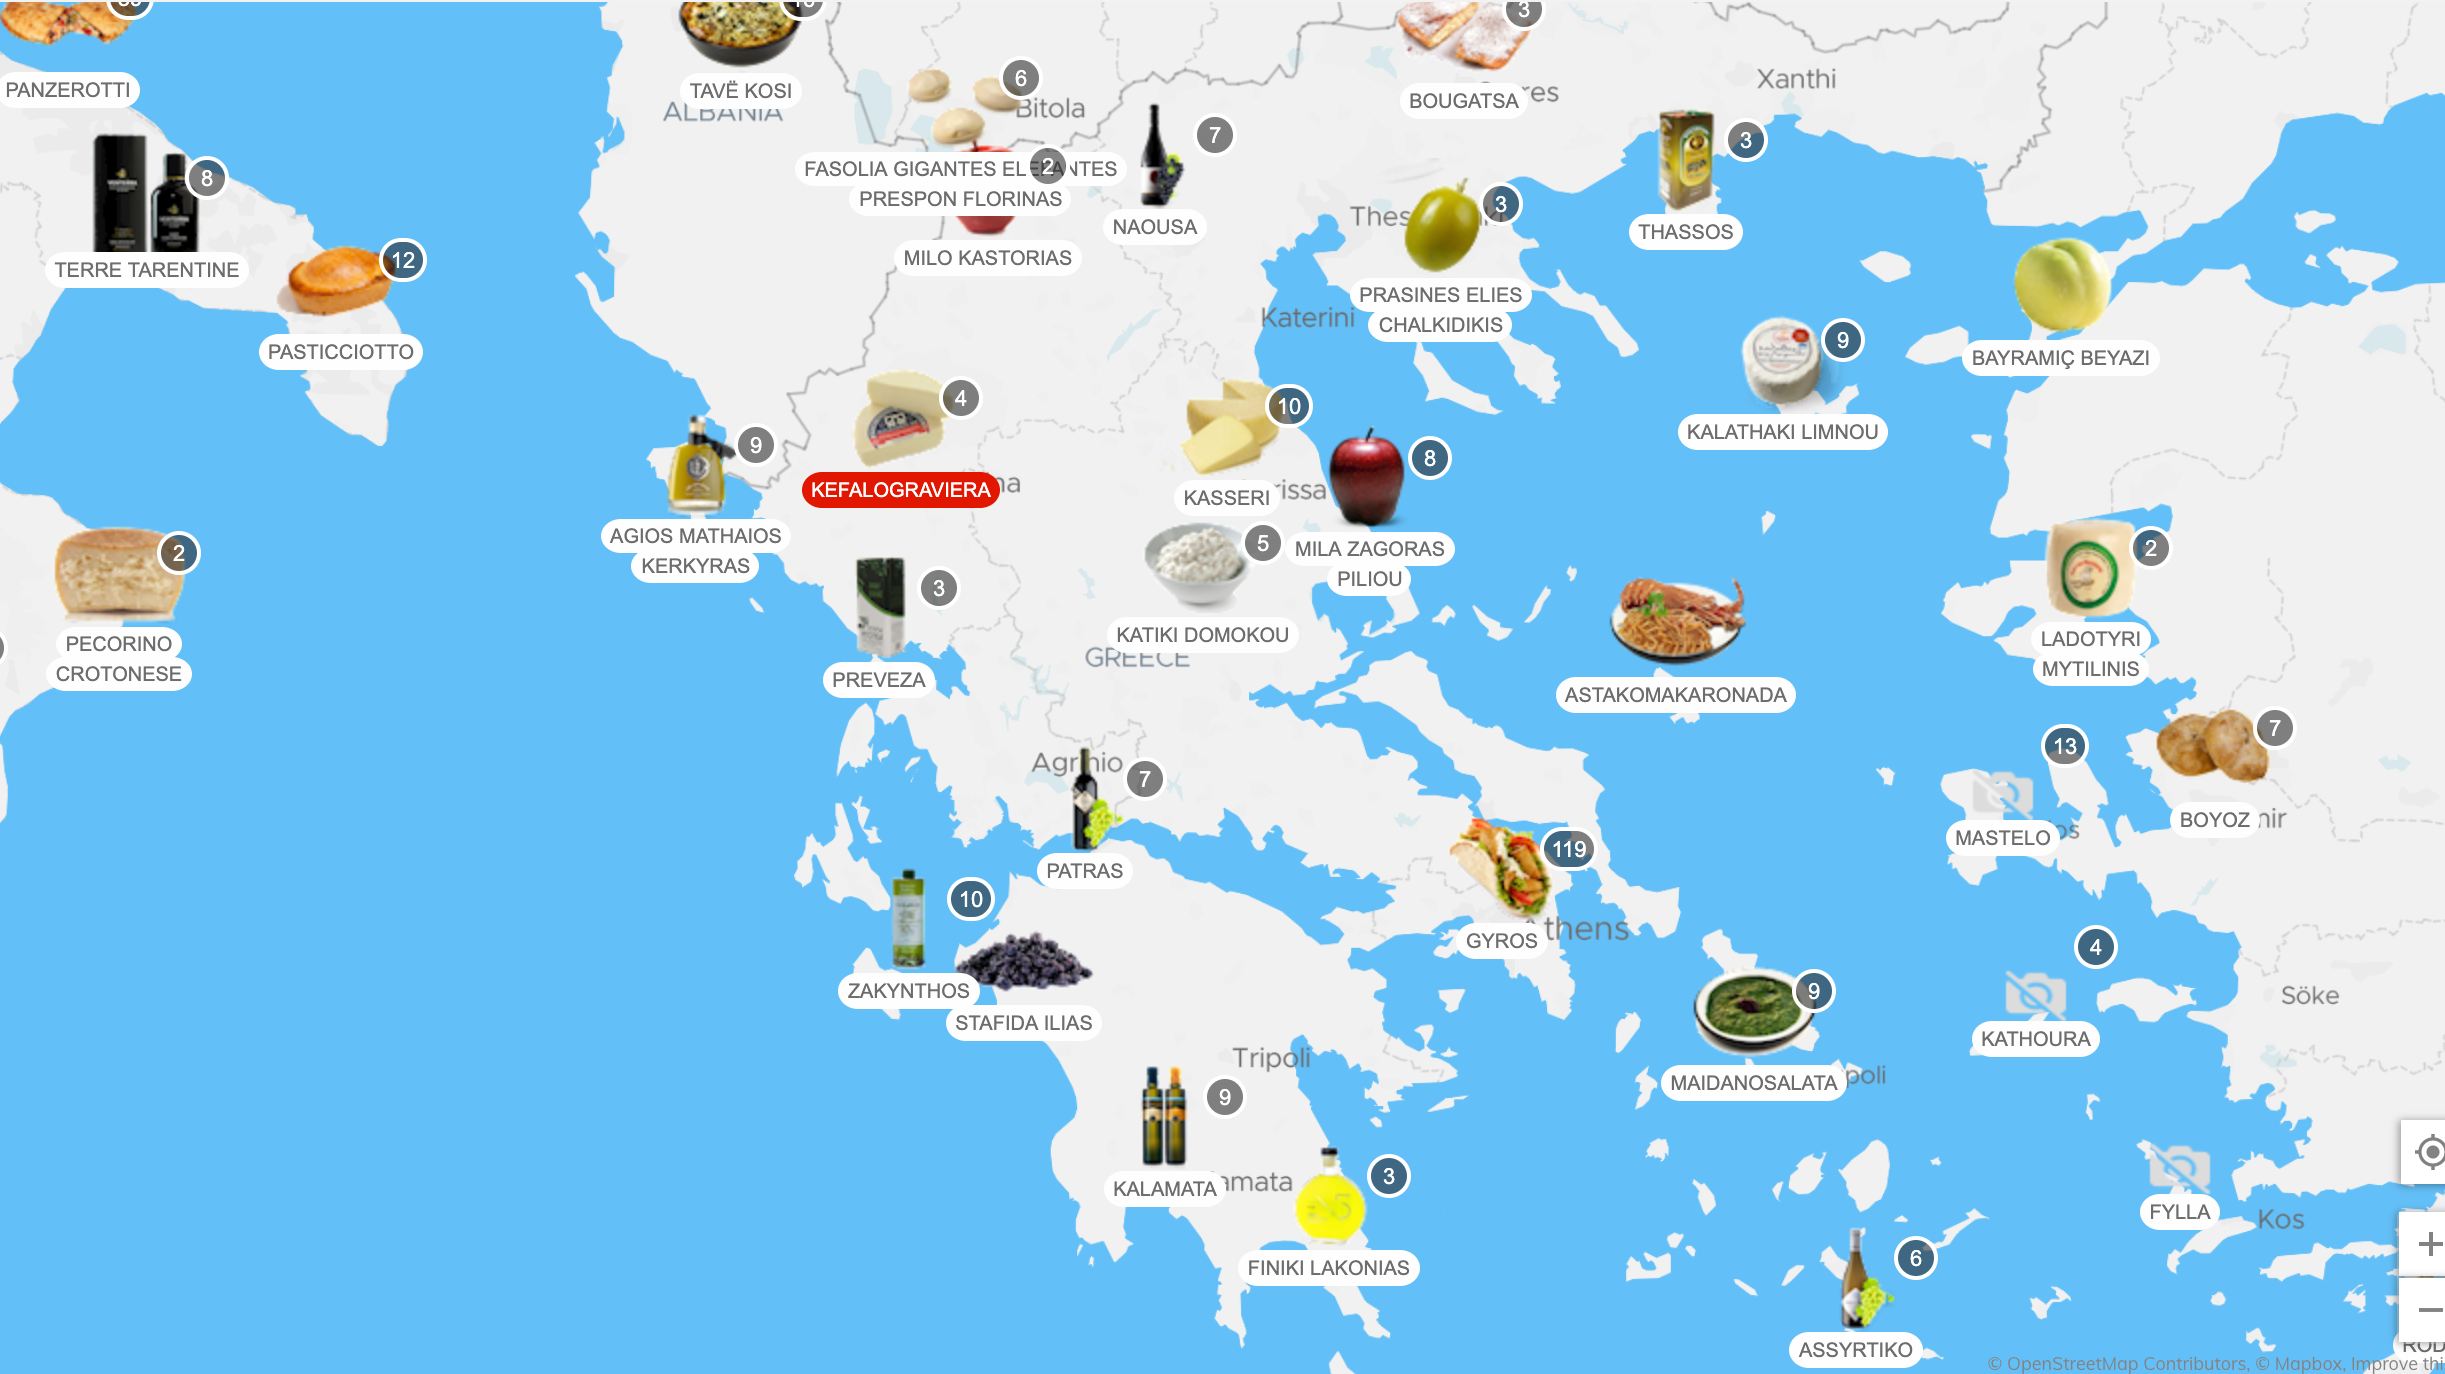 Find And Eat The Best Local Food In The World With TasteAtlas